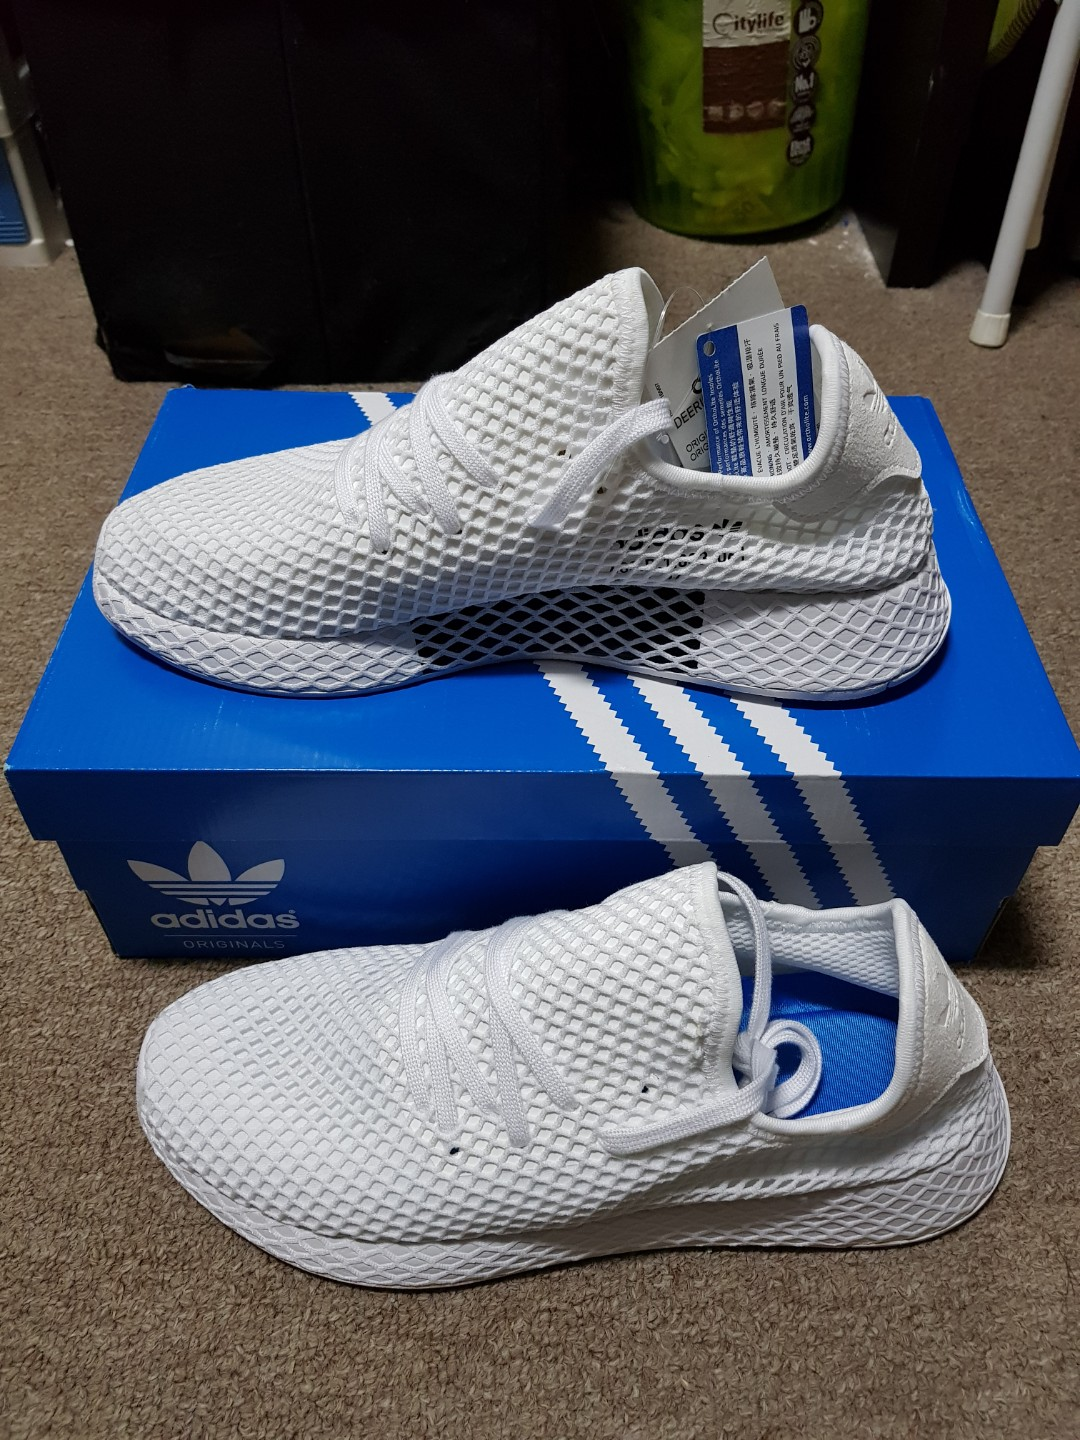 huge selection of e60b2 2c214 Adidas deerupt white(100% Authentic), Mens Fashion, Footwear, Sneakers on  Carousell